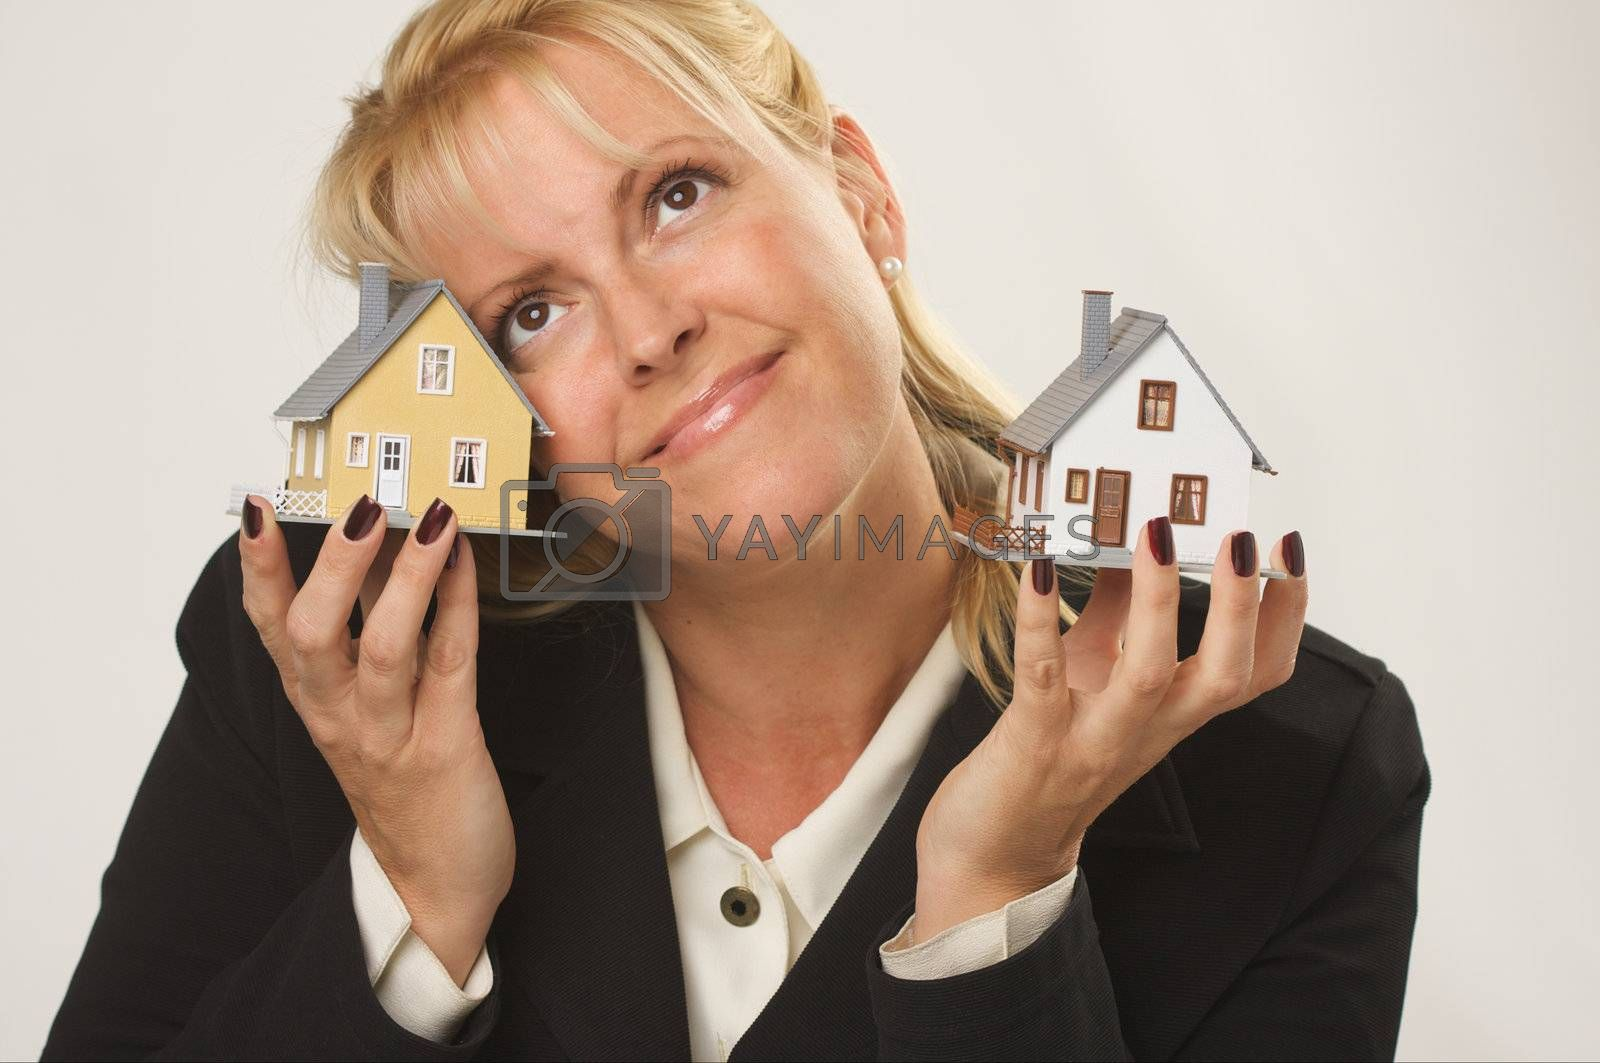 Female dreaming while holding two houses.